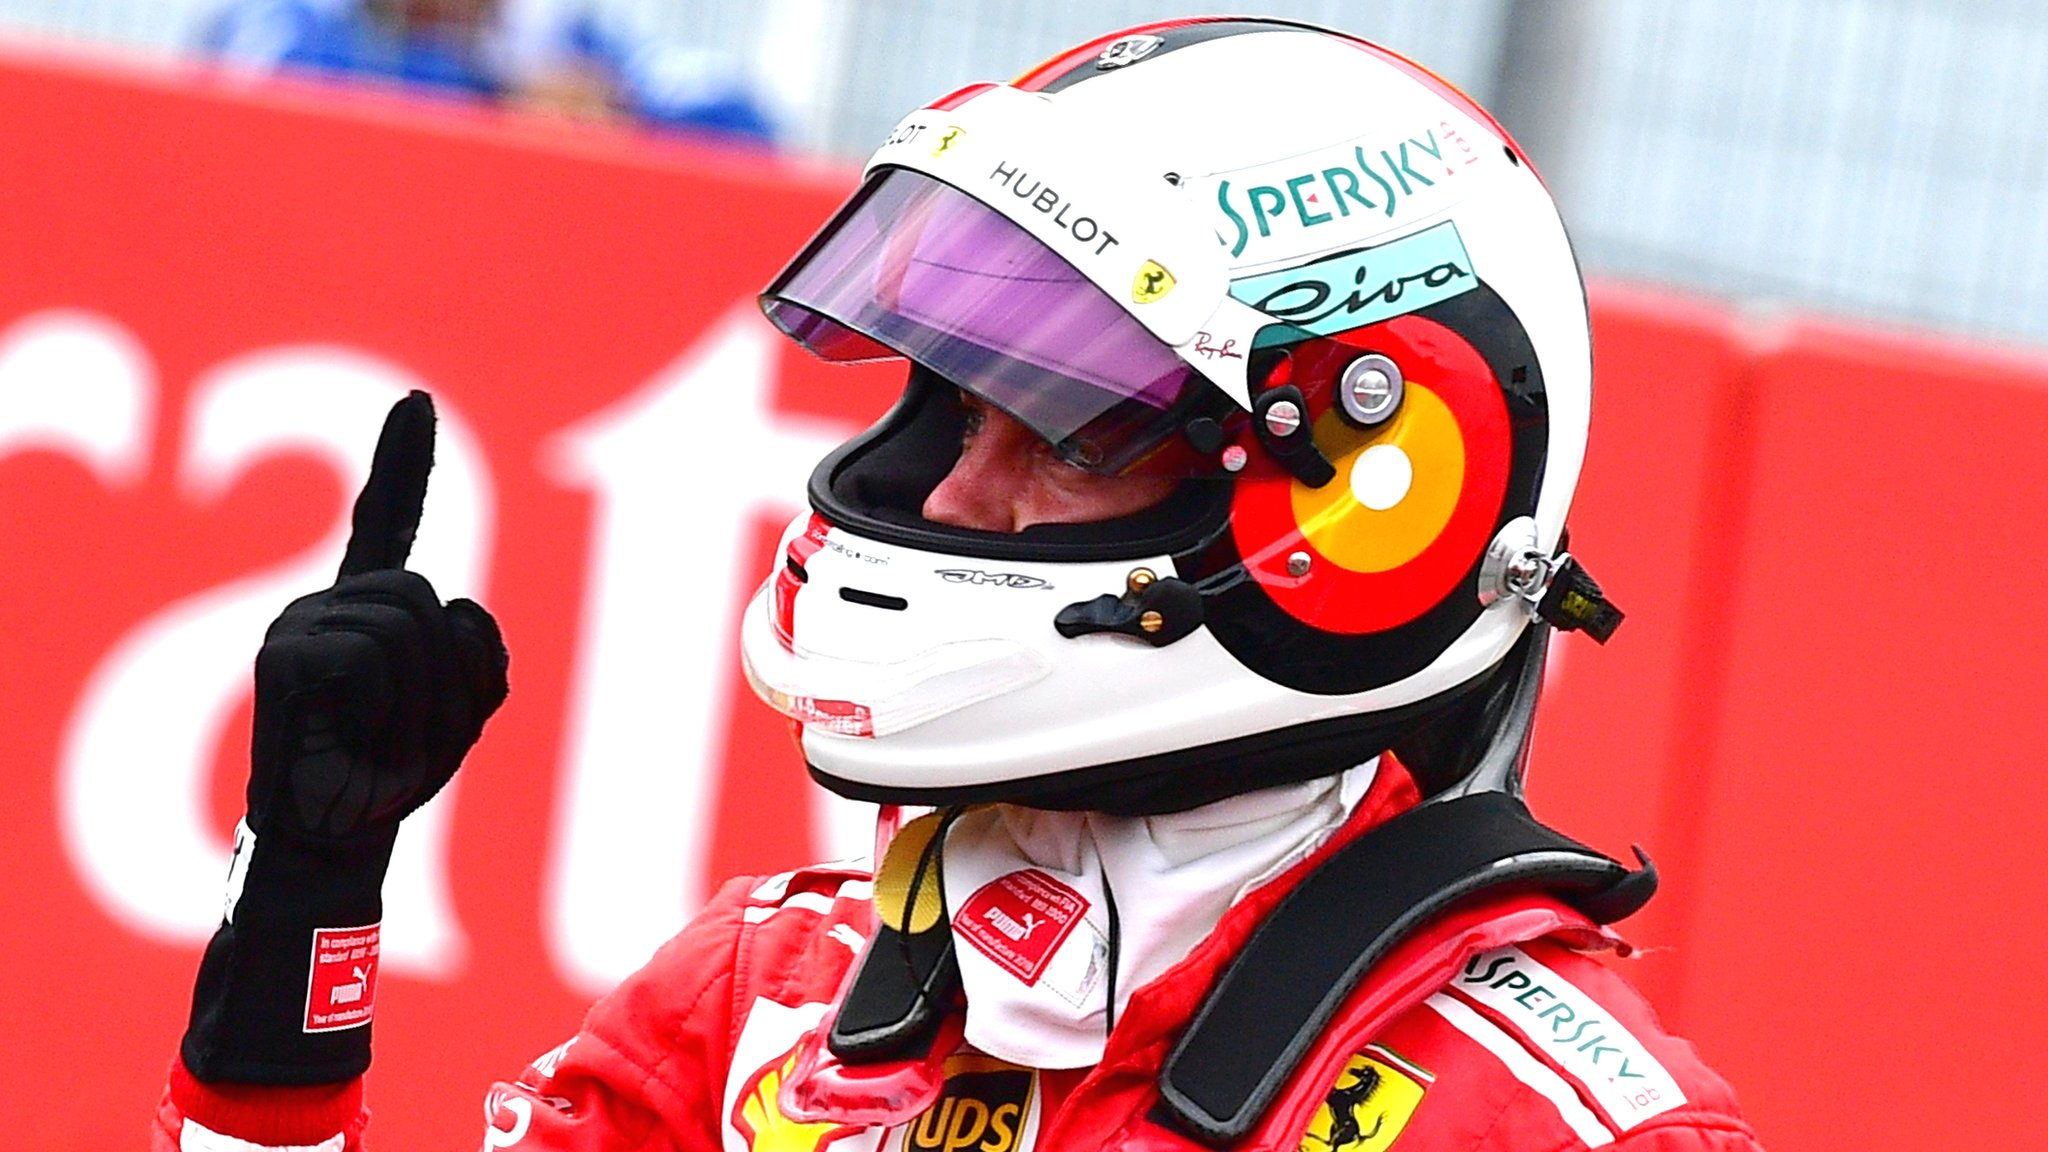 Vettel on pole, changes at Ferrari - all you need to know for the German GP